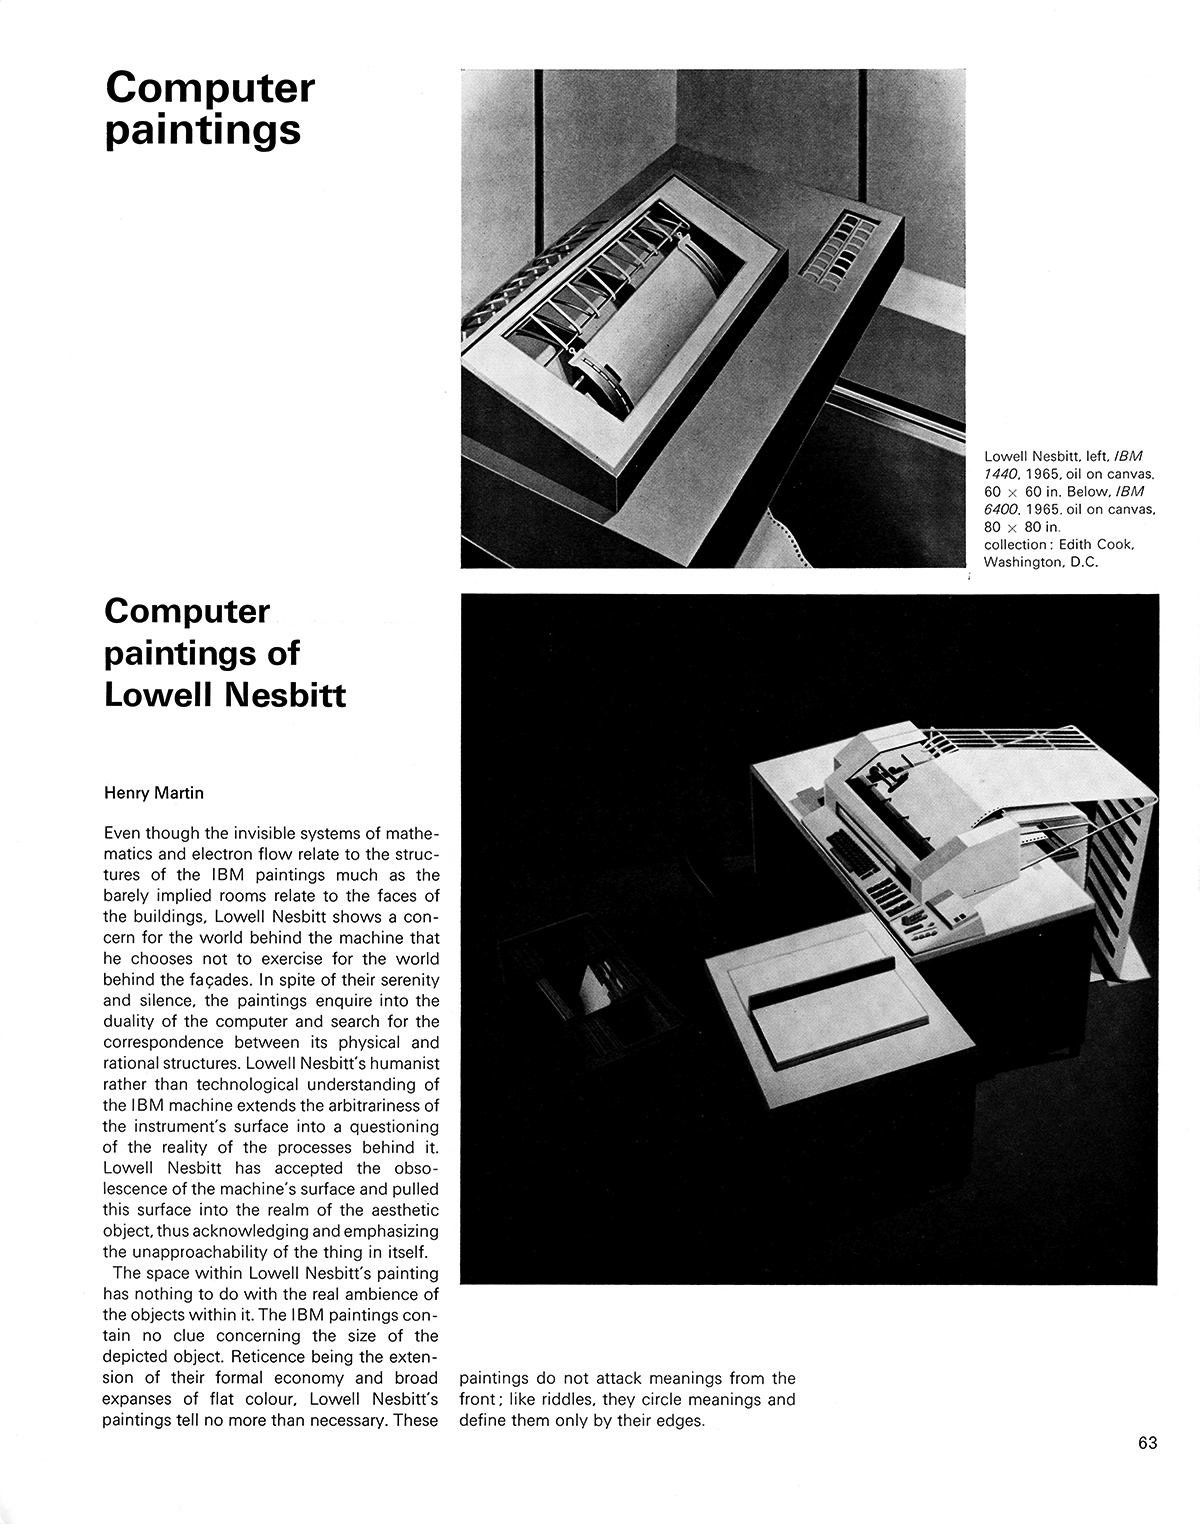 Computer paintings - Computer paintings of Lowell Nesbitt by Henry Martin. Cybernetic Serendipity: The Computer and the Arts, Studio International Special Issue, 1968, page 63.